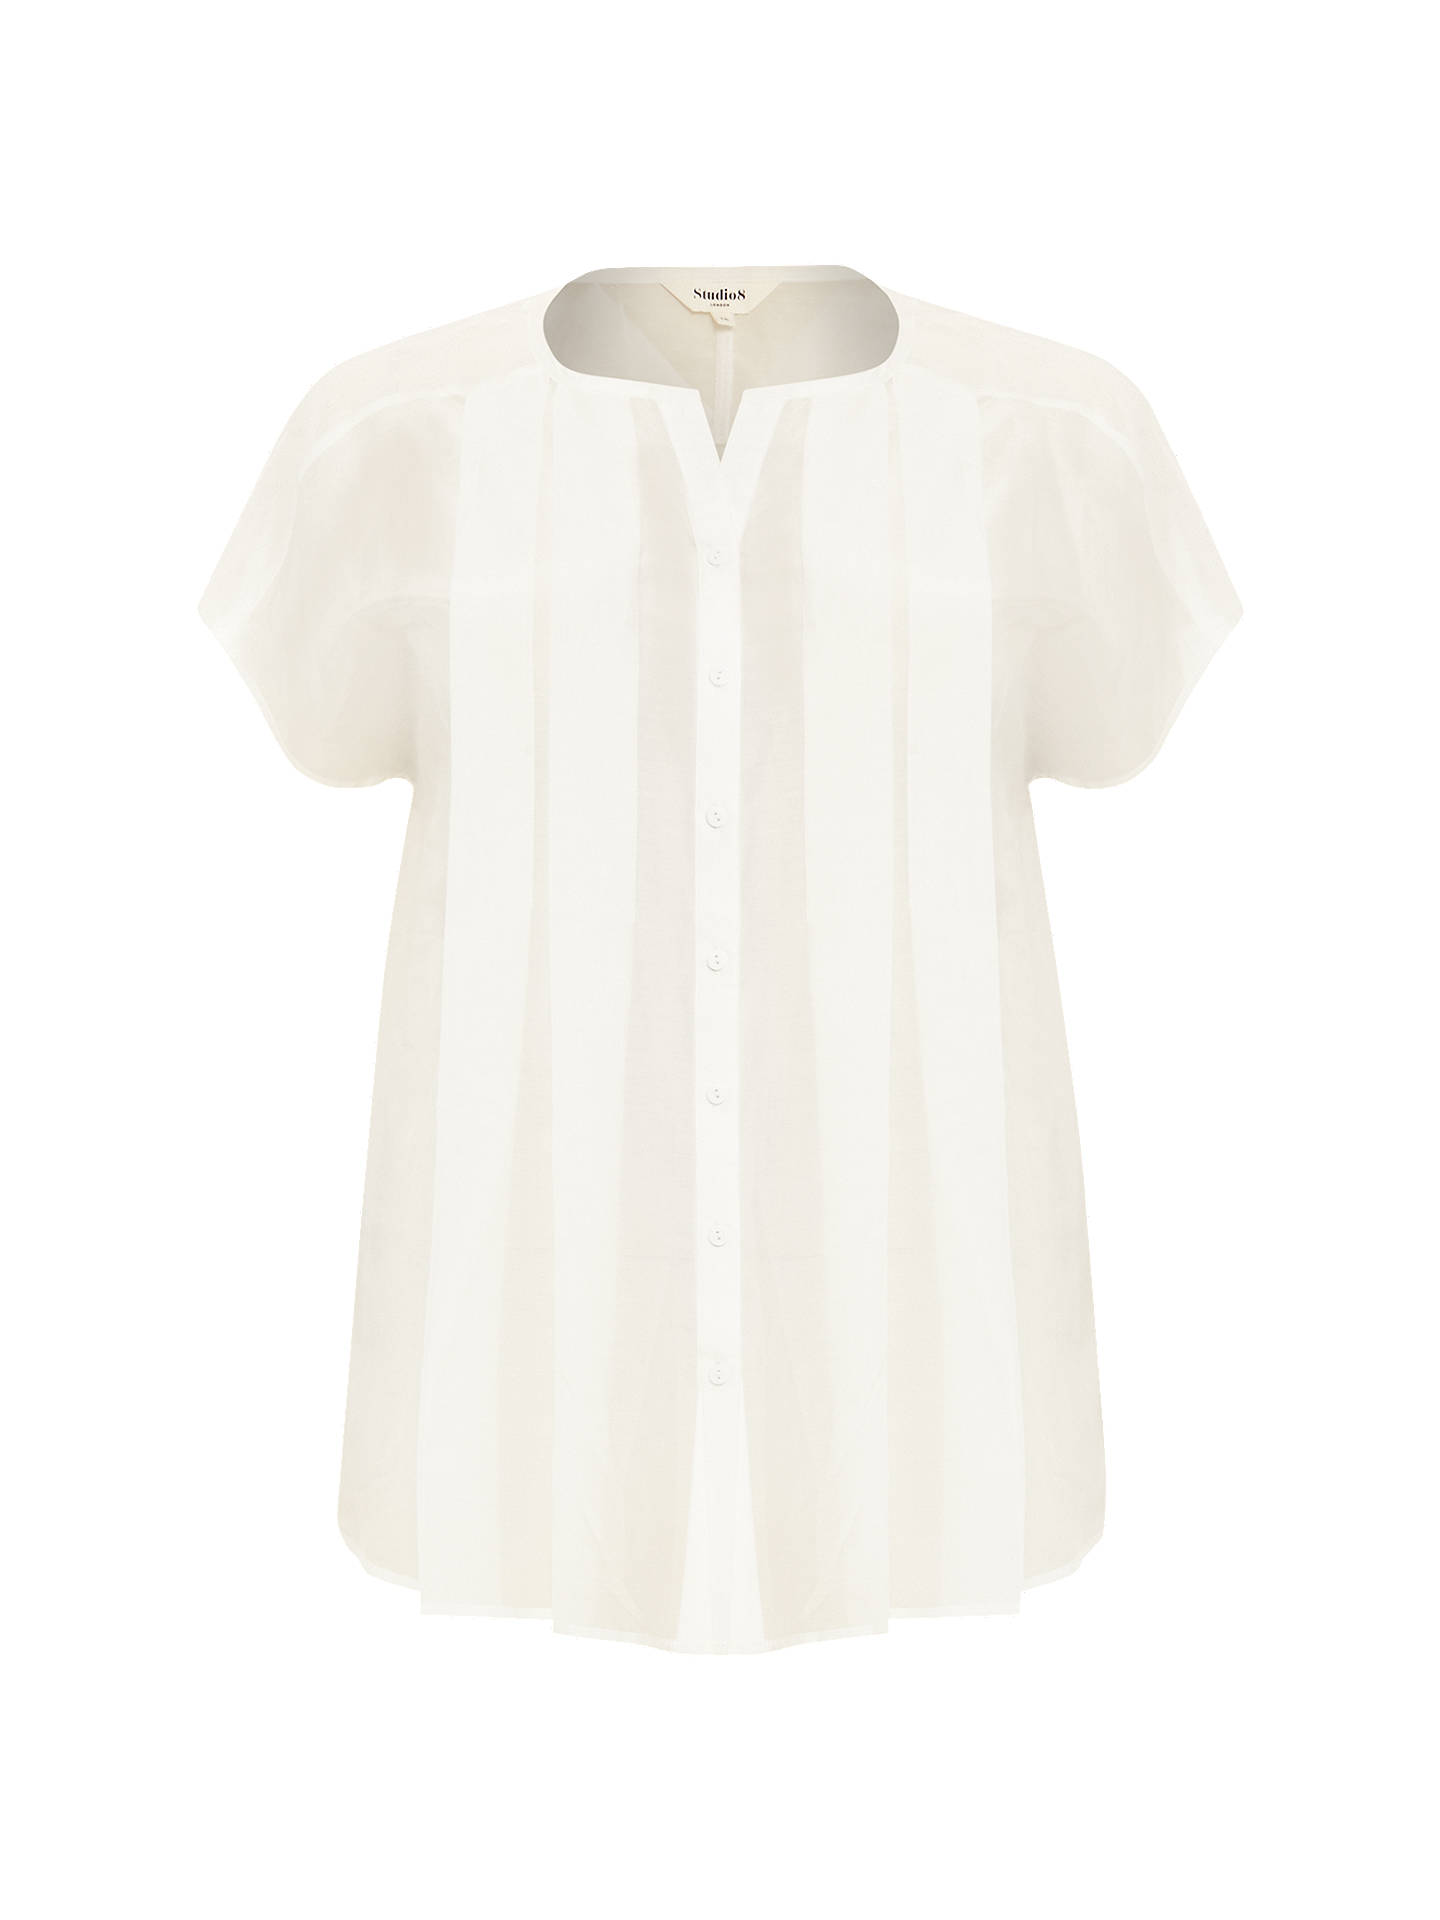 BuyStudio 8 Natalie Top, White, 16 Online at johnlewis.com